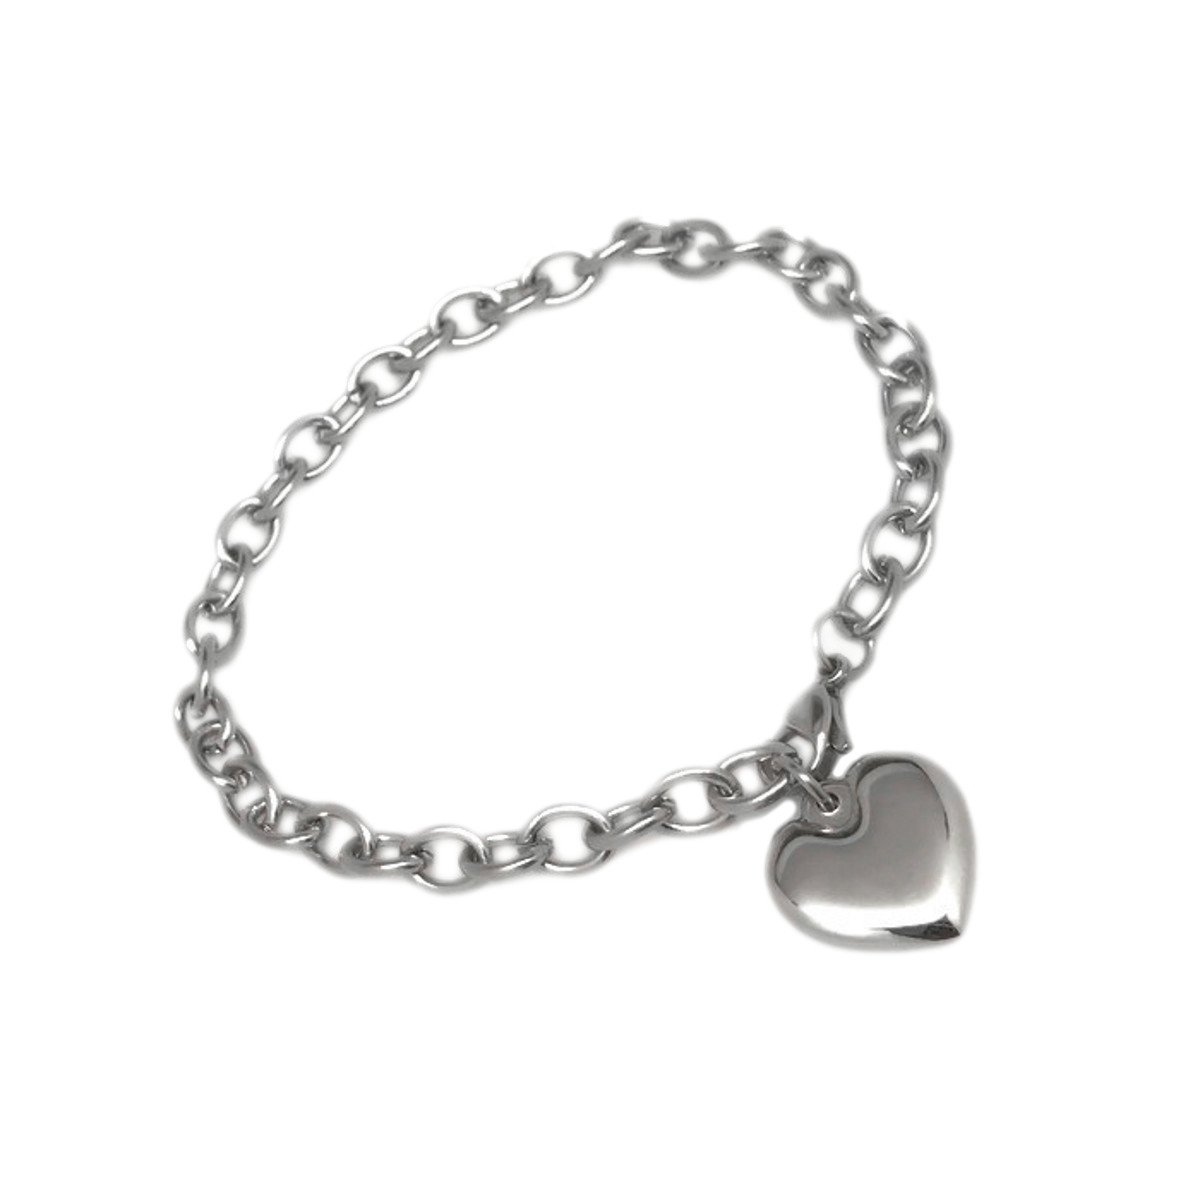 Womens Stainless Steel Heart Charm Chain Bracelet Adjustable (6.5 - 7 inches)) by Loralyn Designs (Image #2)